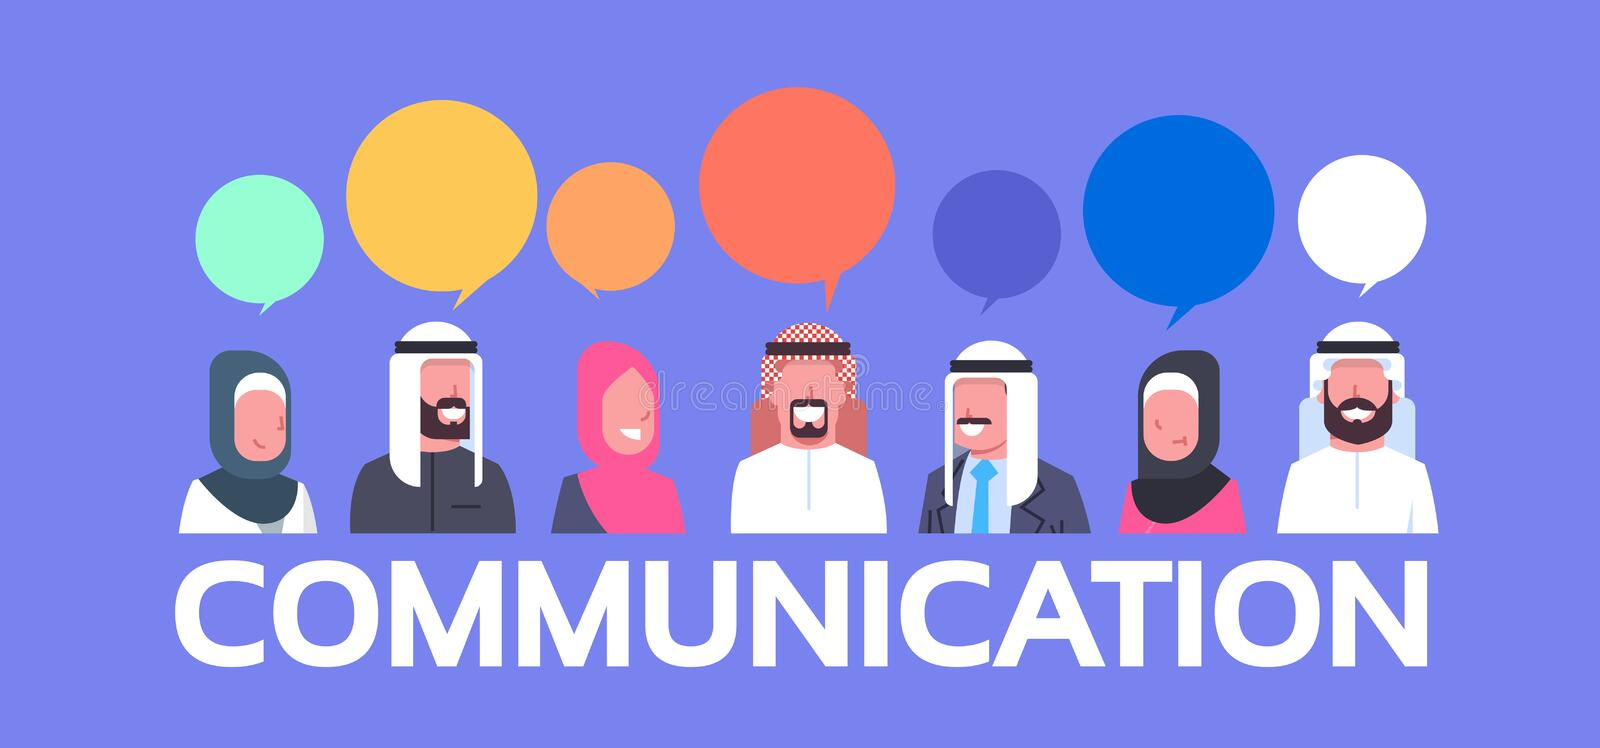 Group Of Arabic People With Chat Bubbles Communication Concept Arab Business Men And Women vector illustration